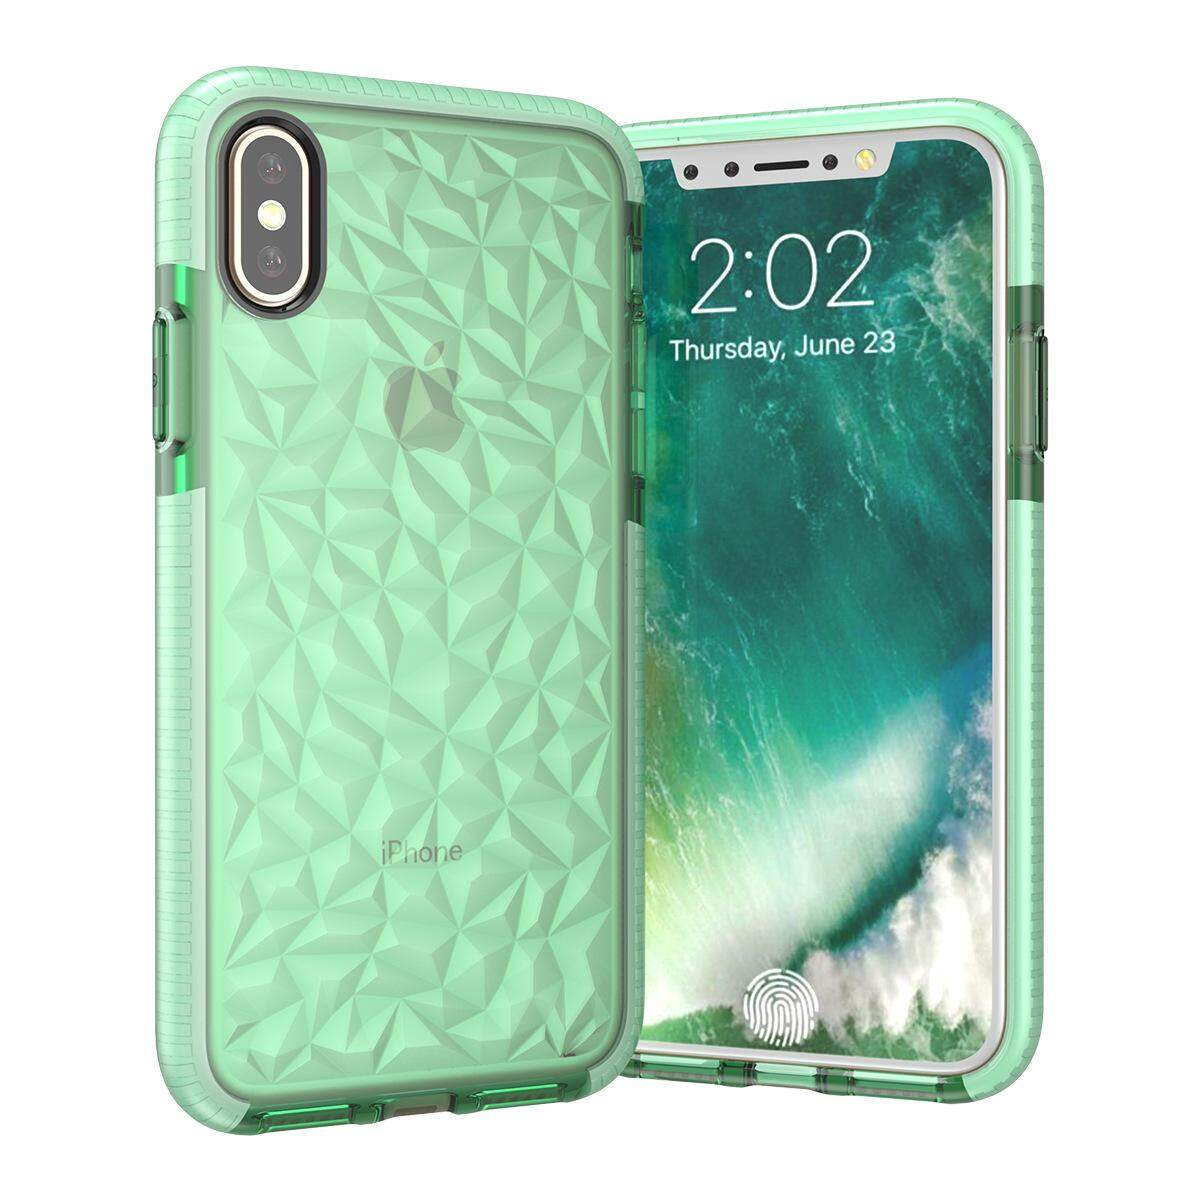 Features Original Spigen Iphone X Crystal Shell Clear Back Panel Case Liquid Antishock Tpu Cover Casing